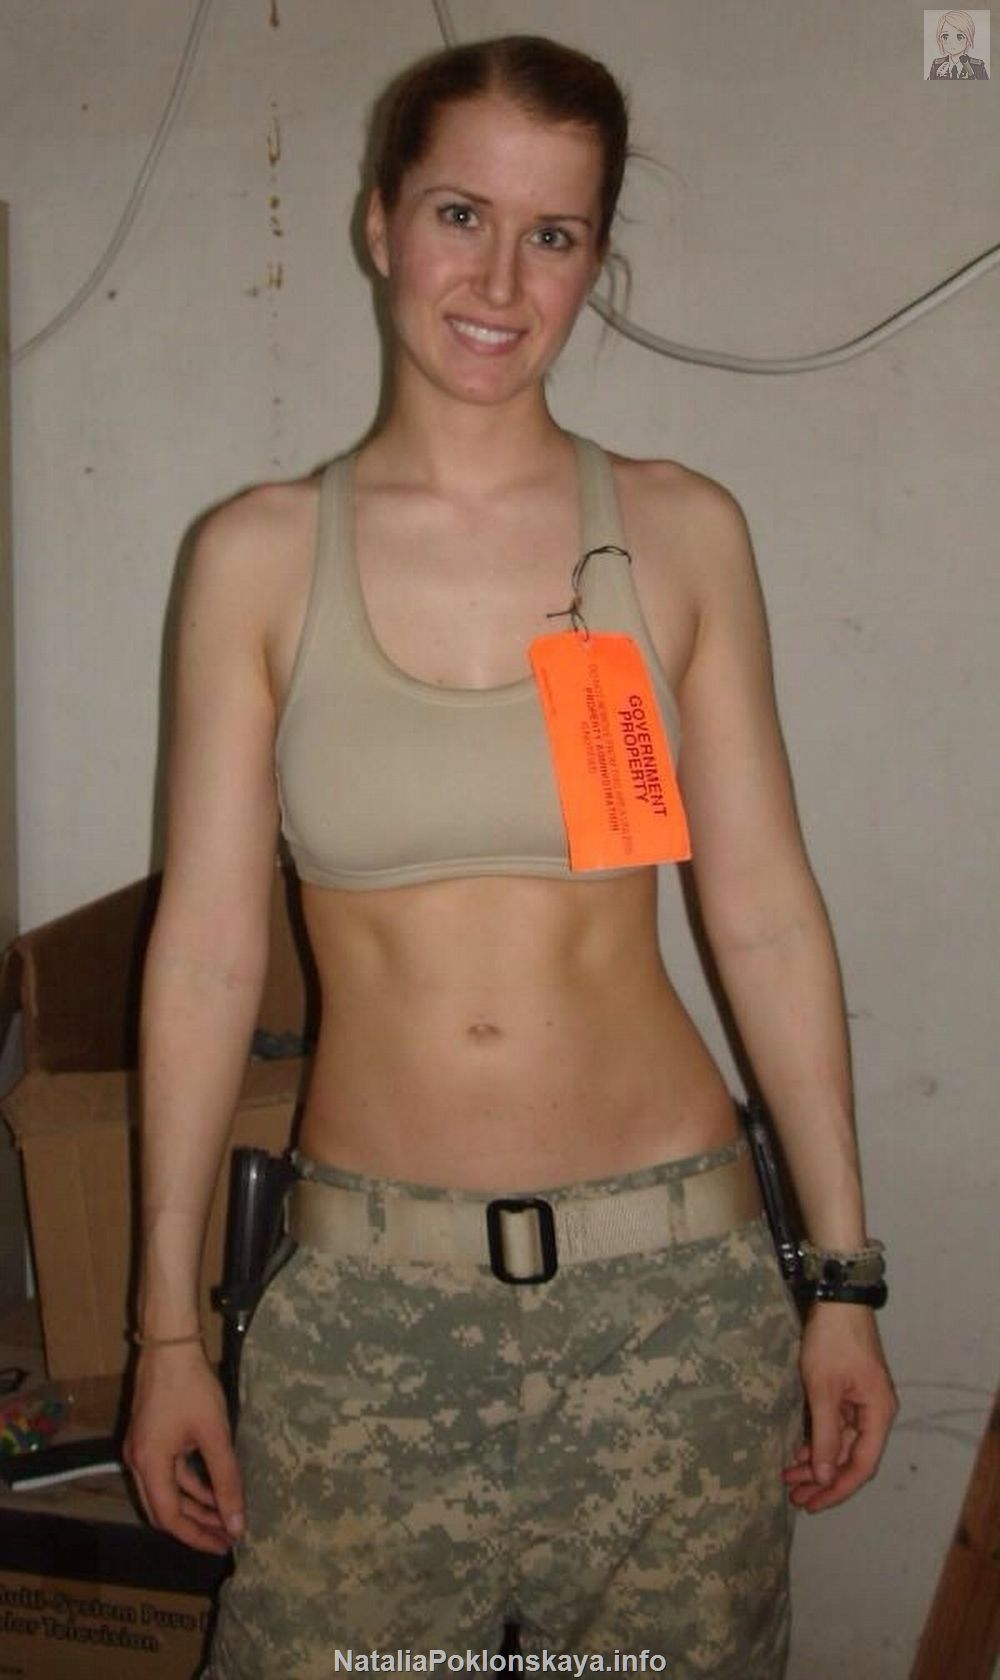 Military women in uniform nude pics 500